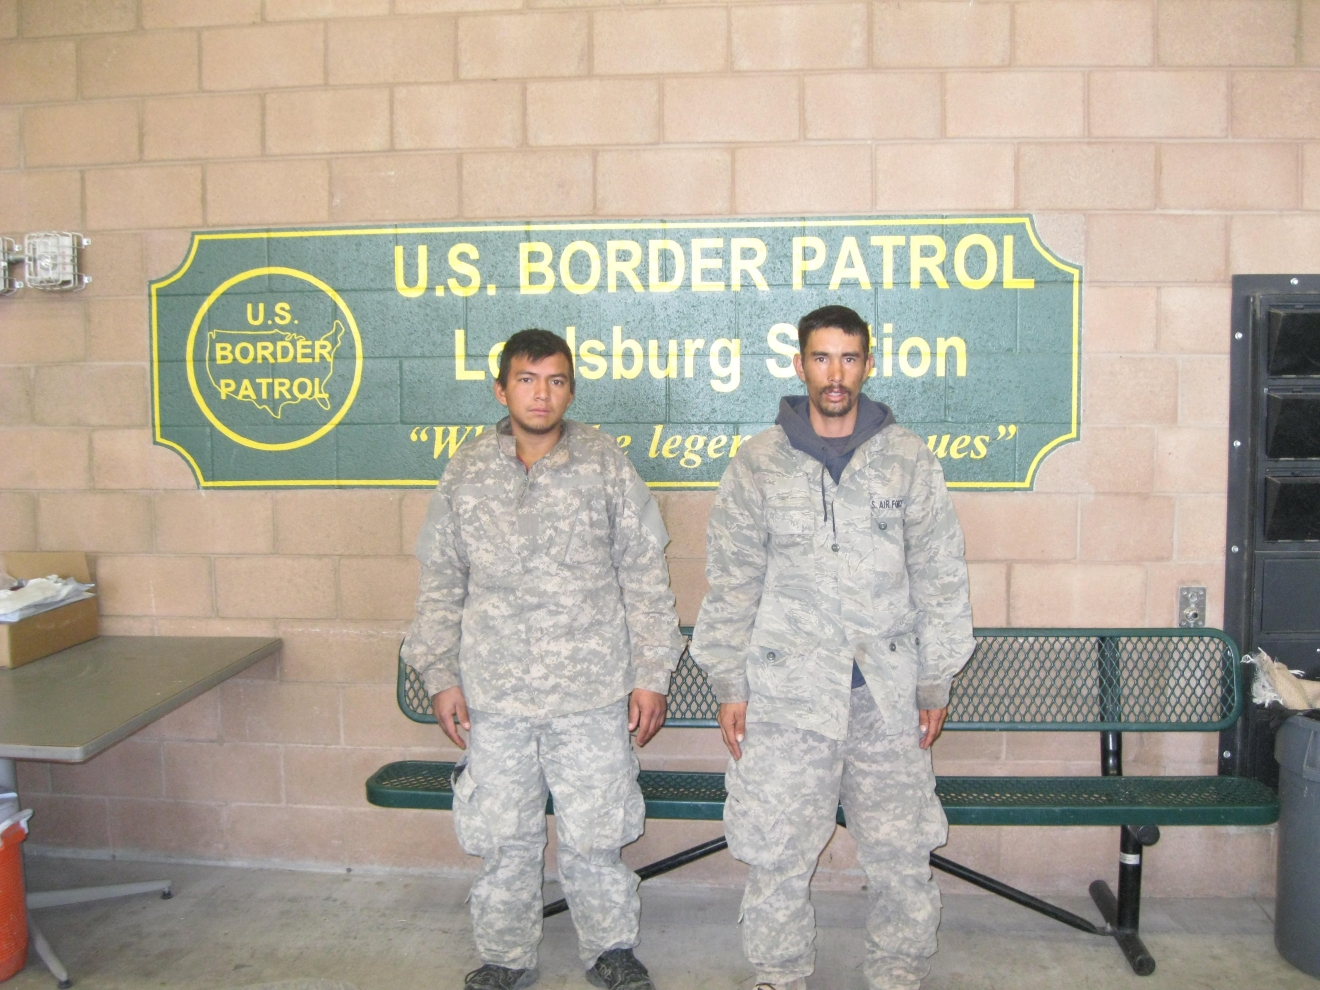 thesis border patrol Essay the us border patrol is the organization that polices the entry of illegal immigrants into our country the official mission of the united states border patrol is to protect the boundaries of the united states by preventing illegal entry, and by detecting, interdicting, and apprehending illegal aliens, smugglers, and contraband.